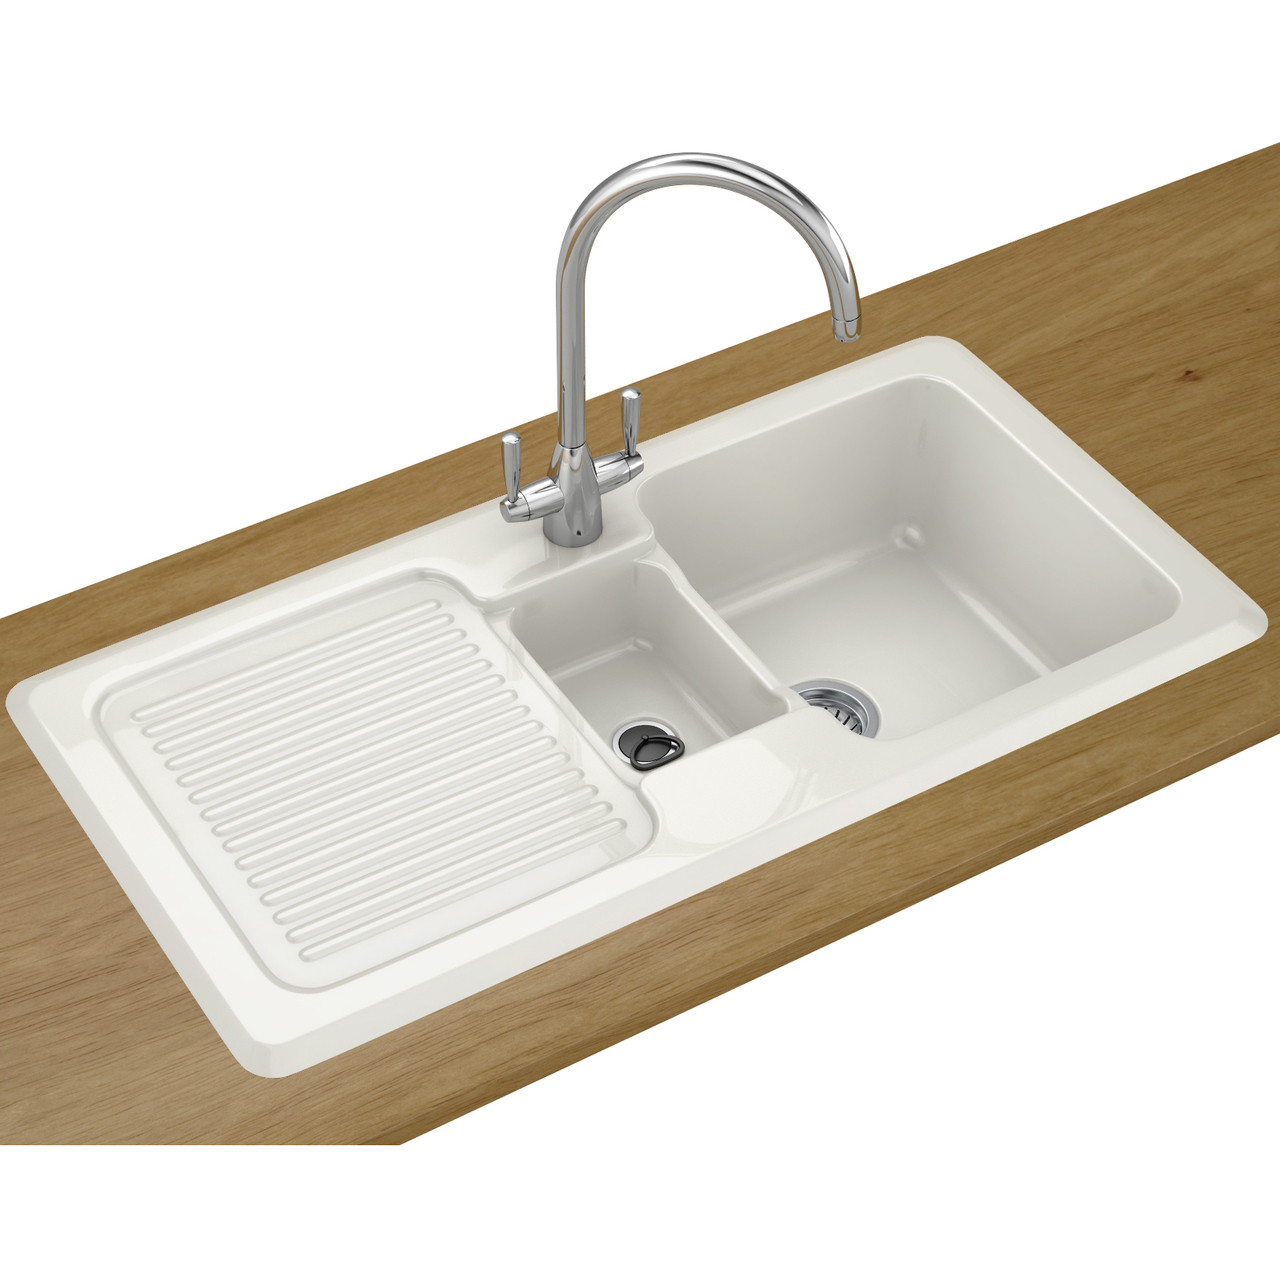 An image of Franke VBK651 Ceramic Kitchen Sink